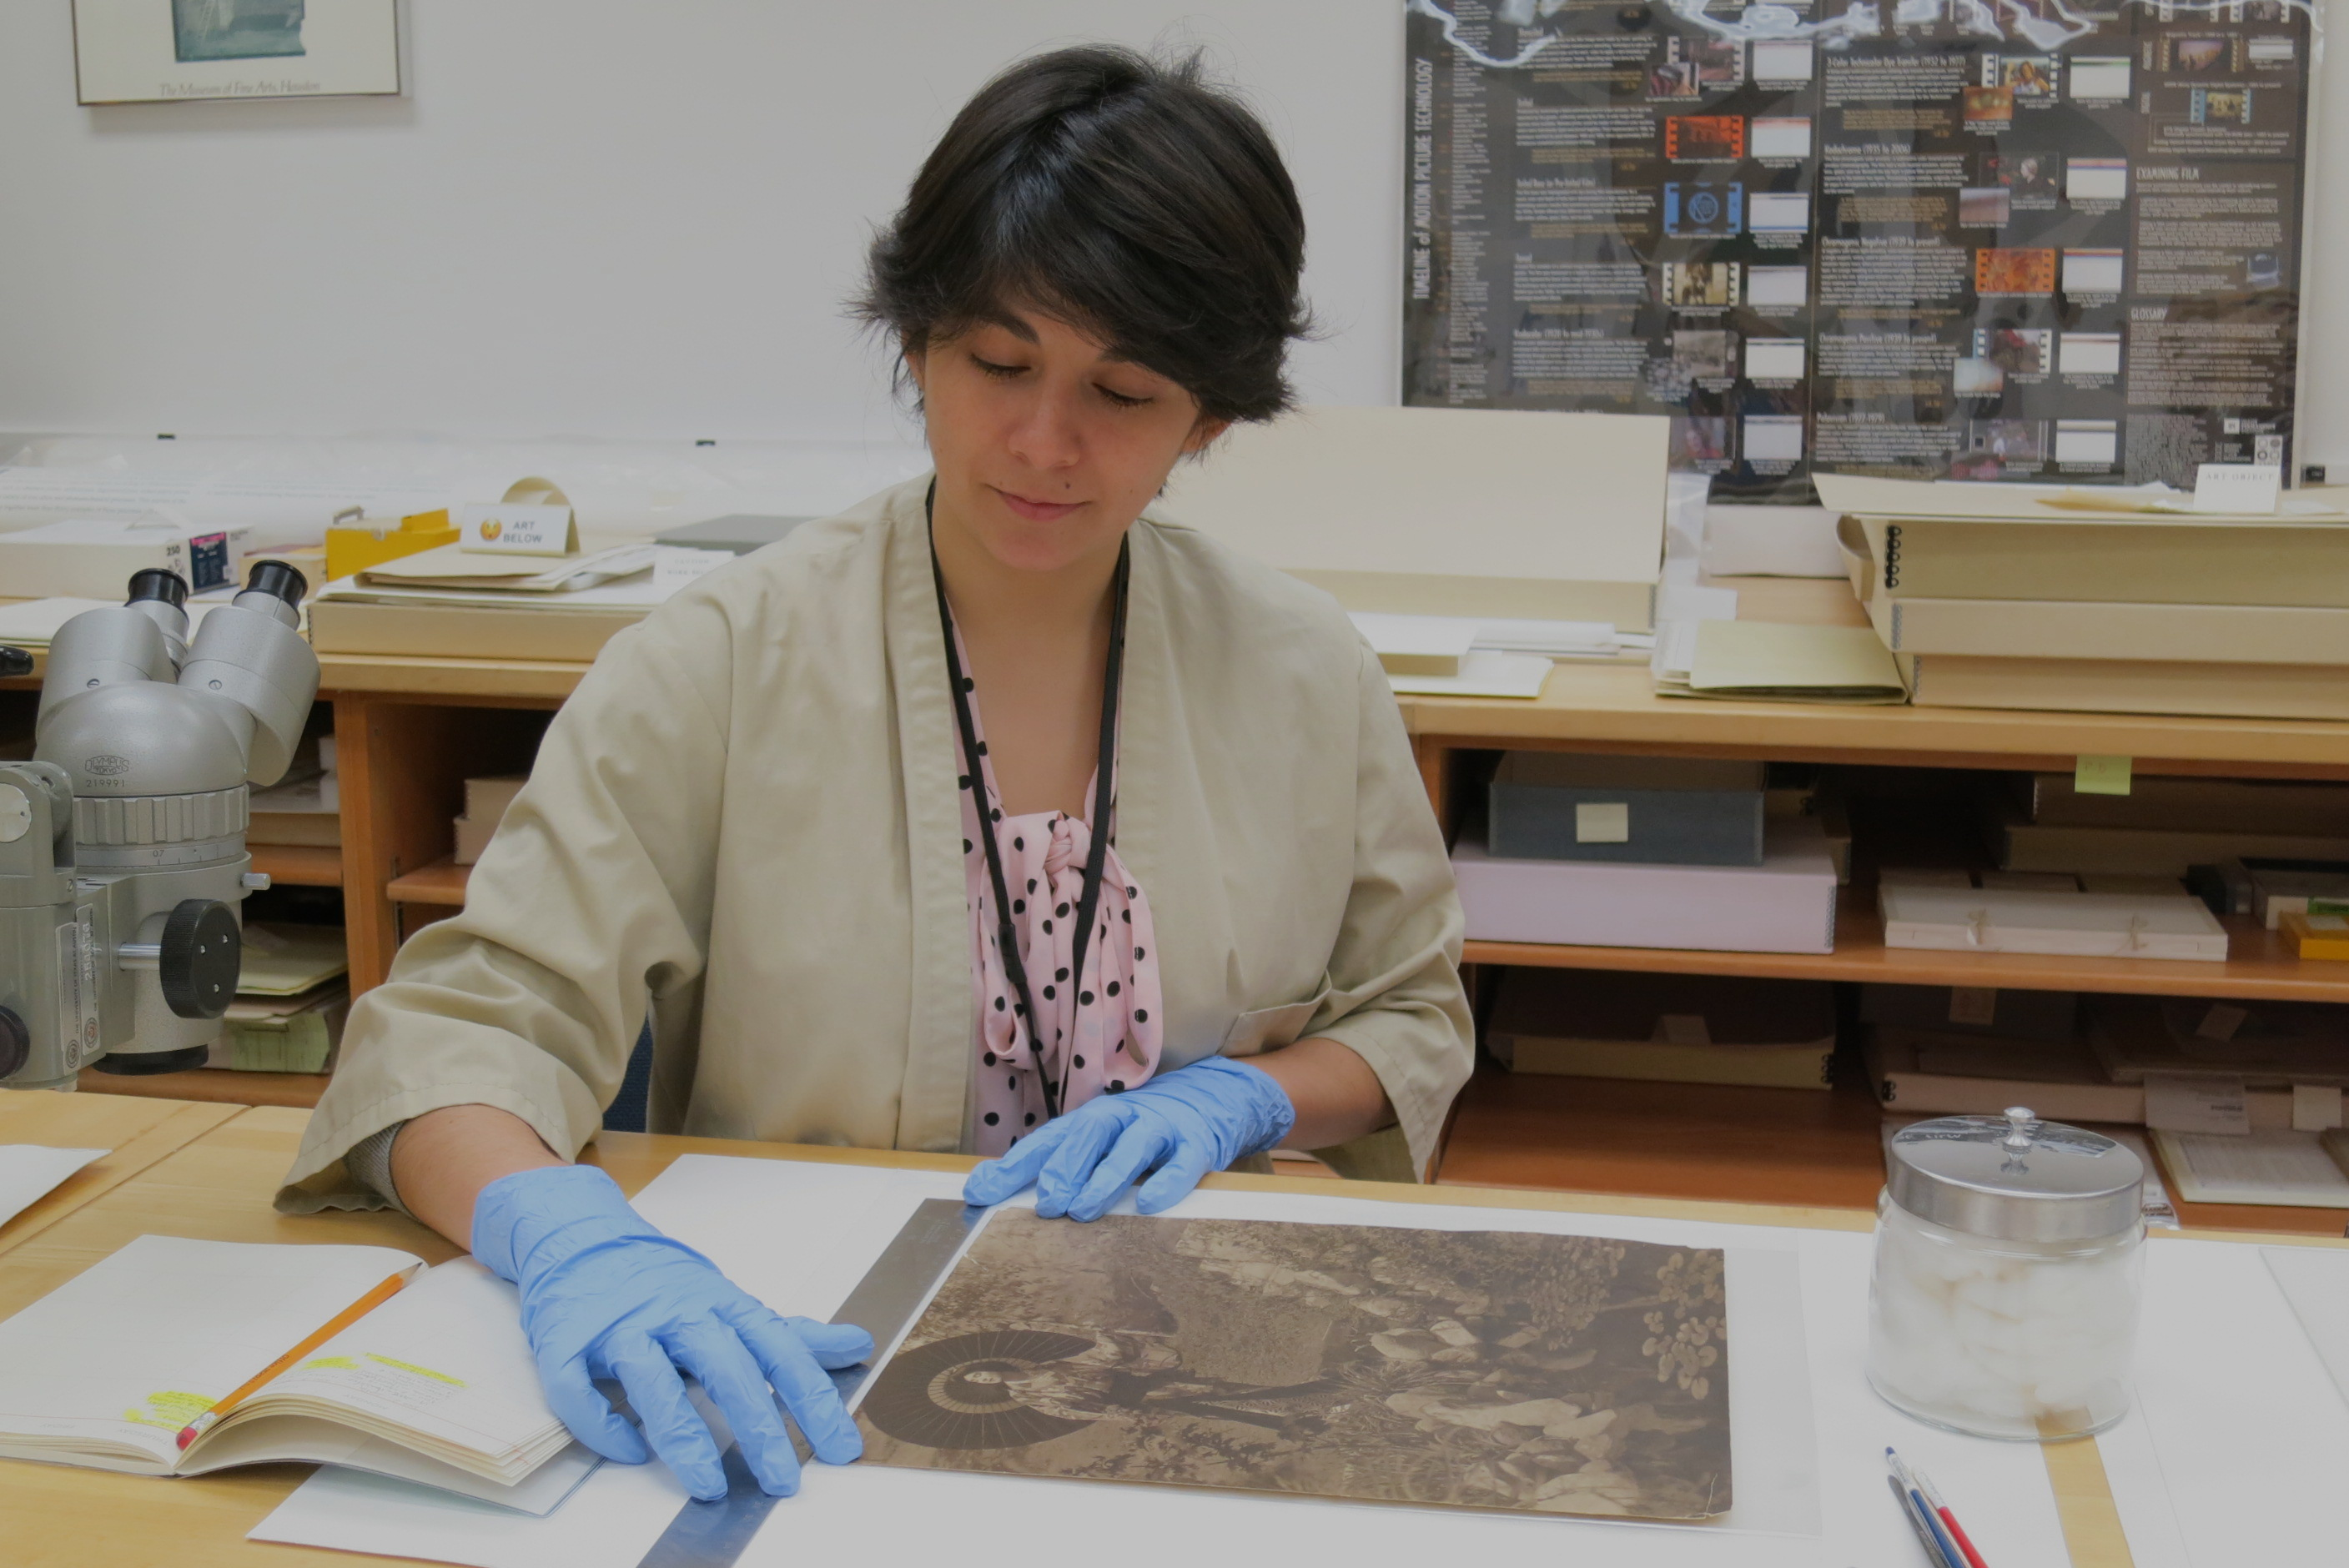 Diaz works on a treatment in the photography conservation lab at the Ransom Center. Photo by Jane Boyd and Barbara Brown.